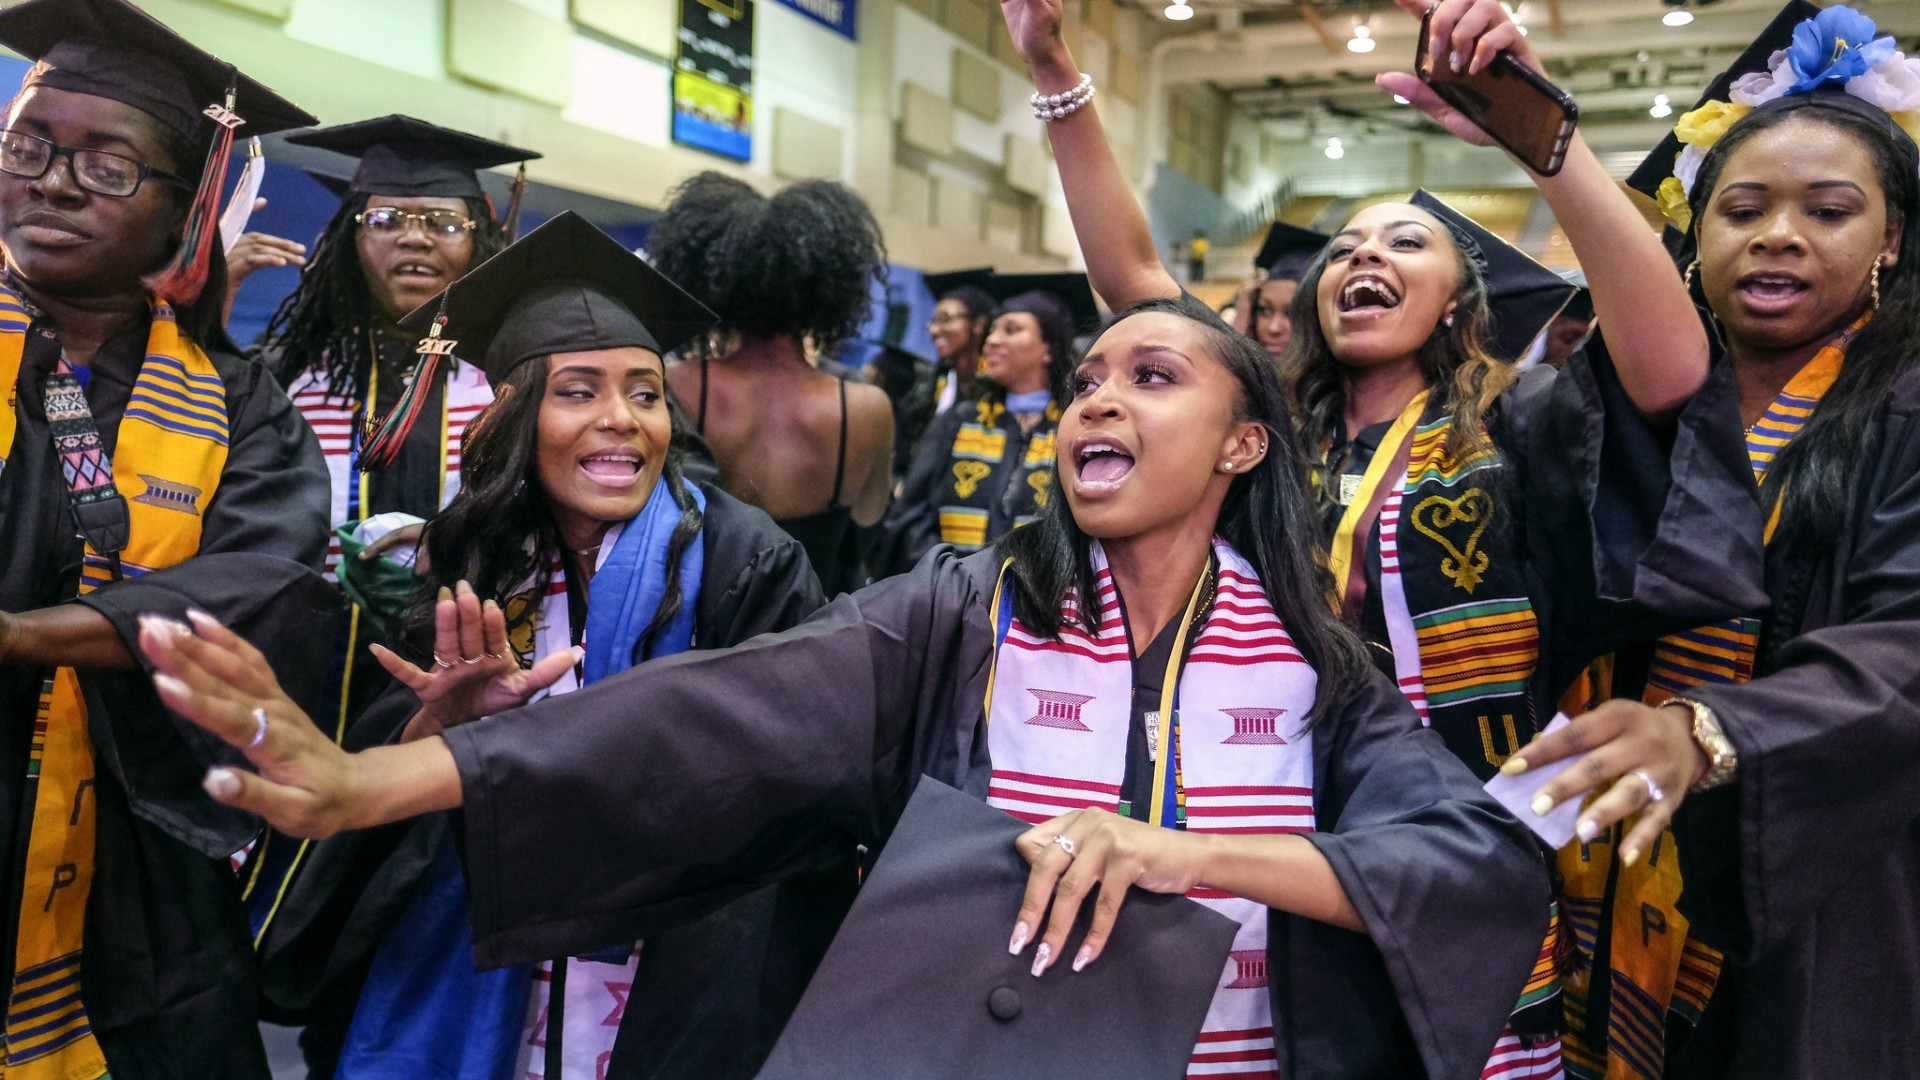 graduation rate trends in california essay Colleges and universities should prepare for seven key trends in the new year,   the university of california, berkeley, for example, tipped over the 100,000   adequately, as well as funding incentives tied to graduation rates.